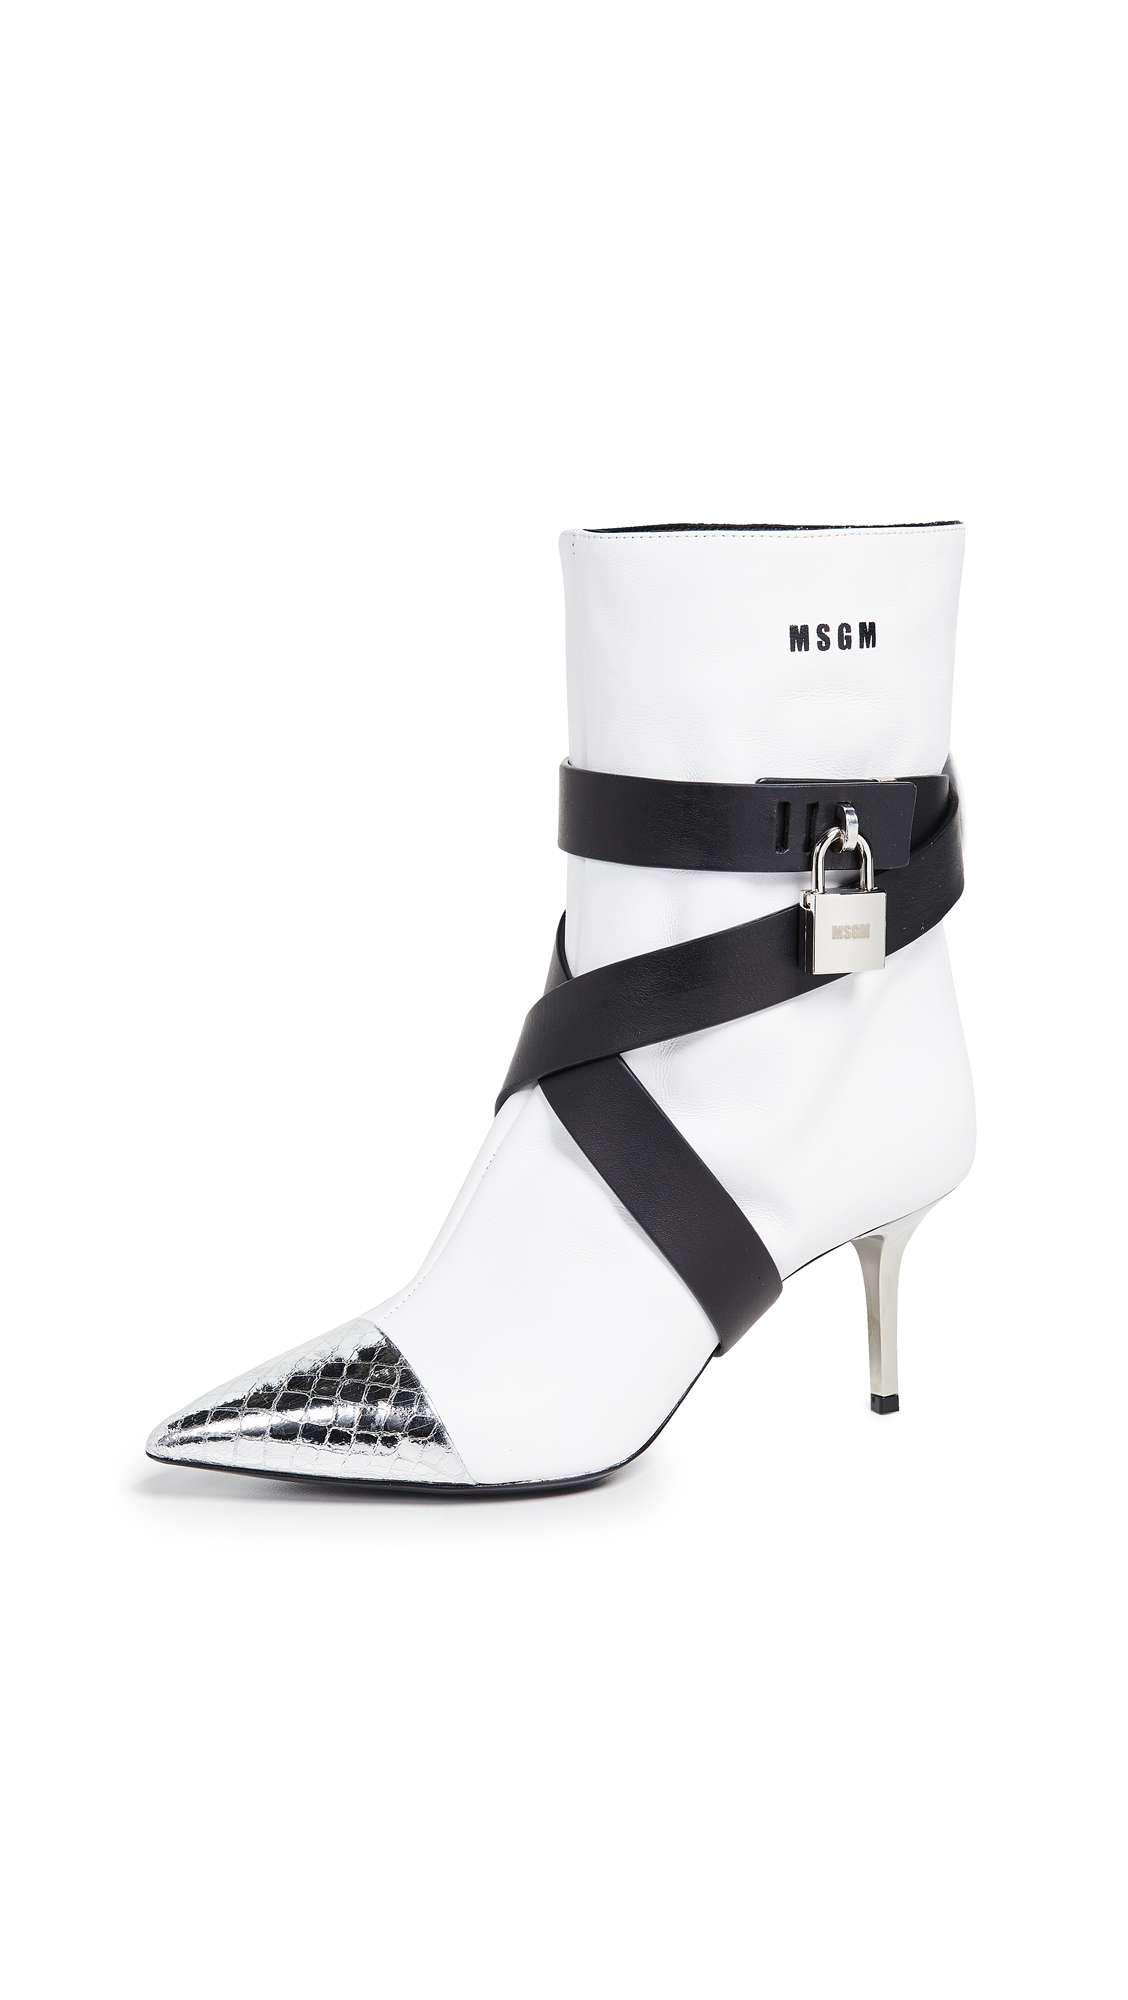 MSGM Ankle Boots - White/Black